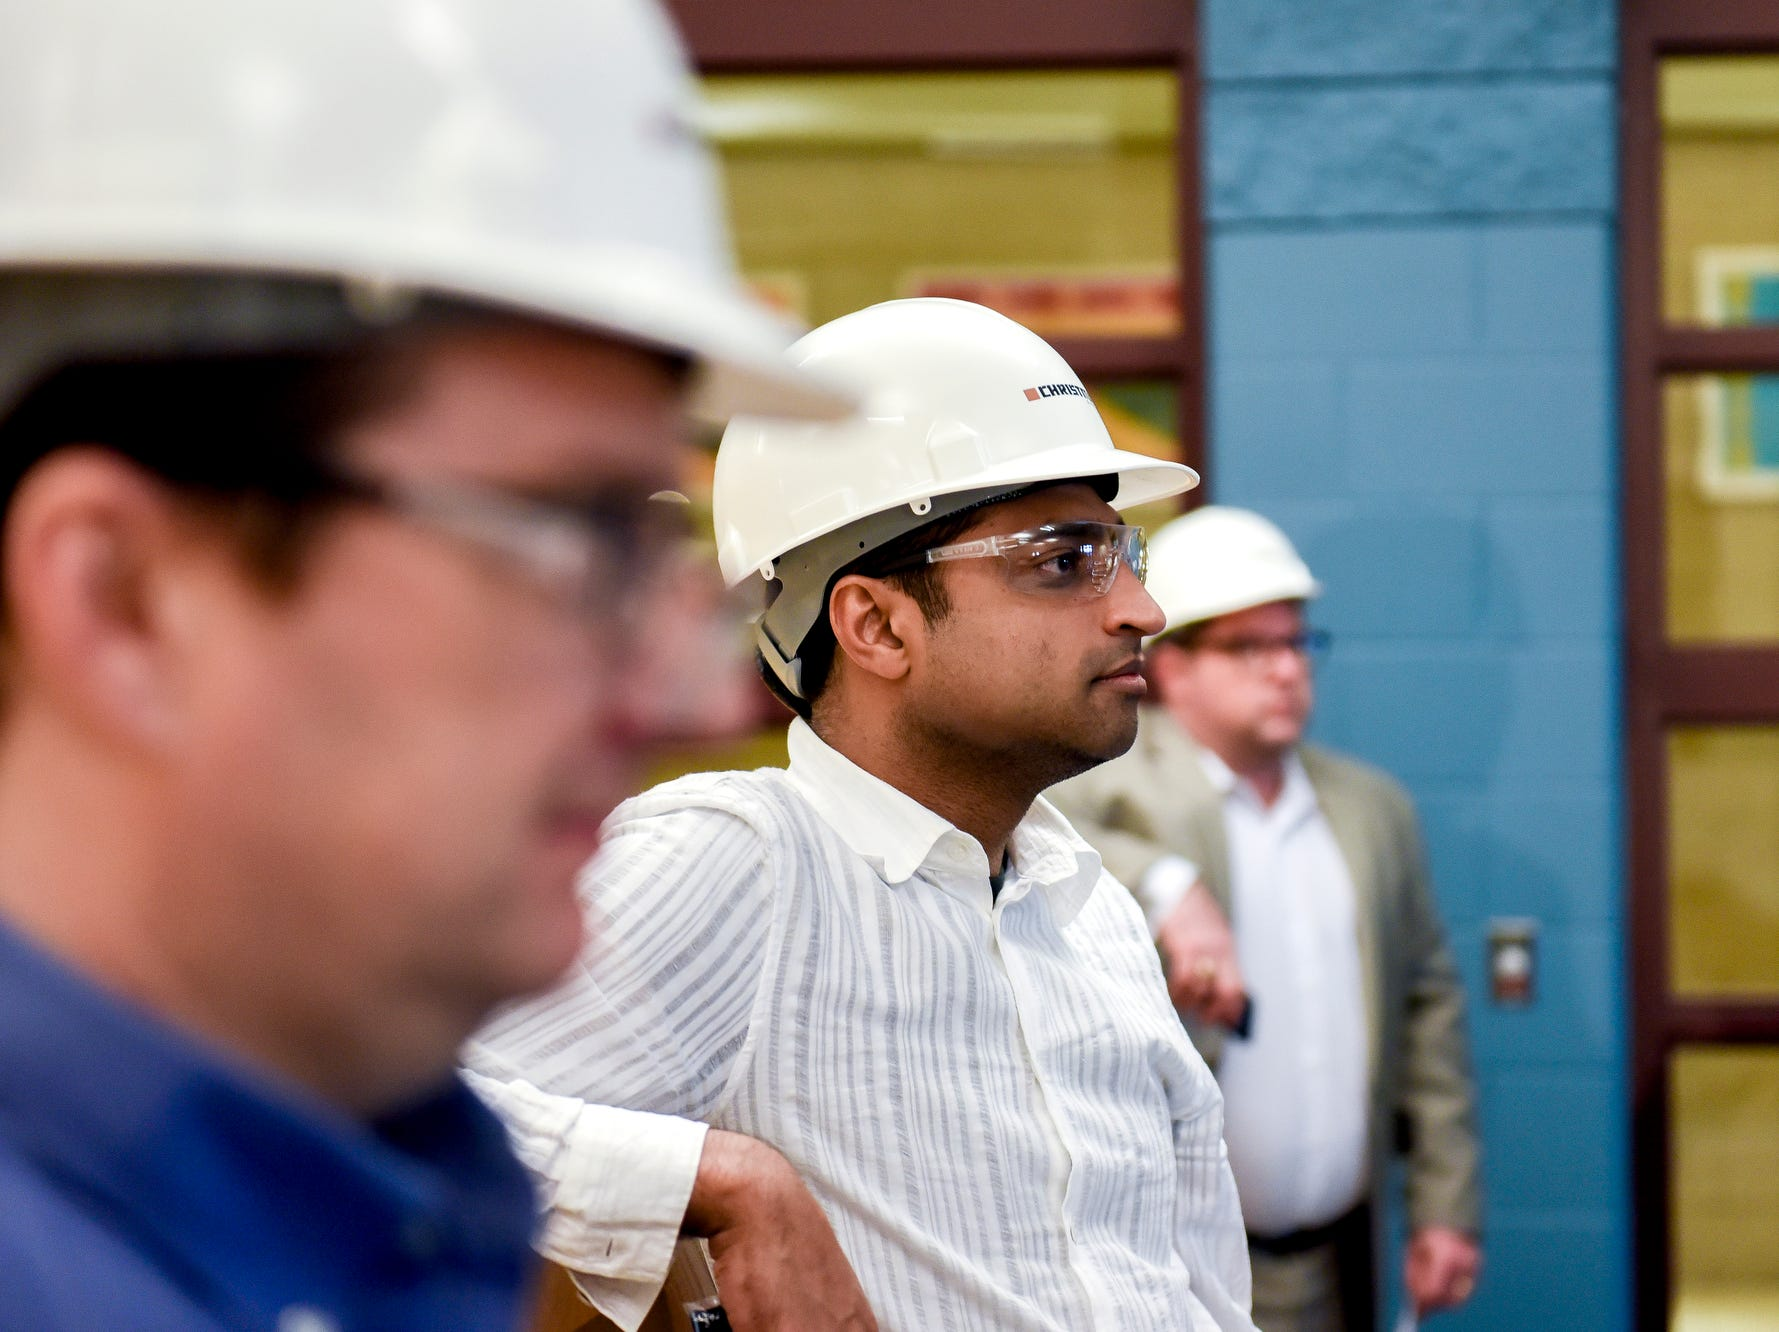 Lansing School District Board of Education Trustee Dr. Farhan Bhatti looks on during a tour of the construction of the new Eastern High School on Thursday, March 14, 2019, in Lansing. The project is being funded by the district's successful Pathway Promise millage, which was passed by voters in 2016. The building was formerly Pattengill Academy.